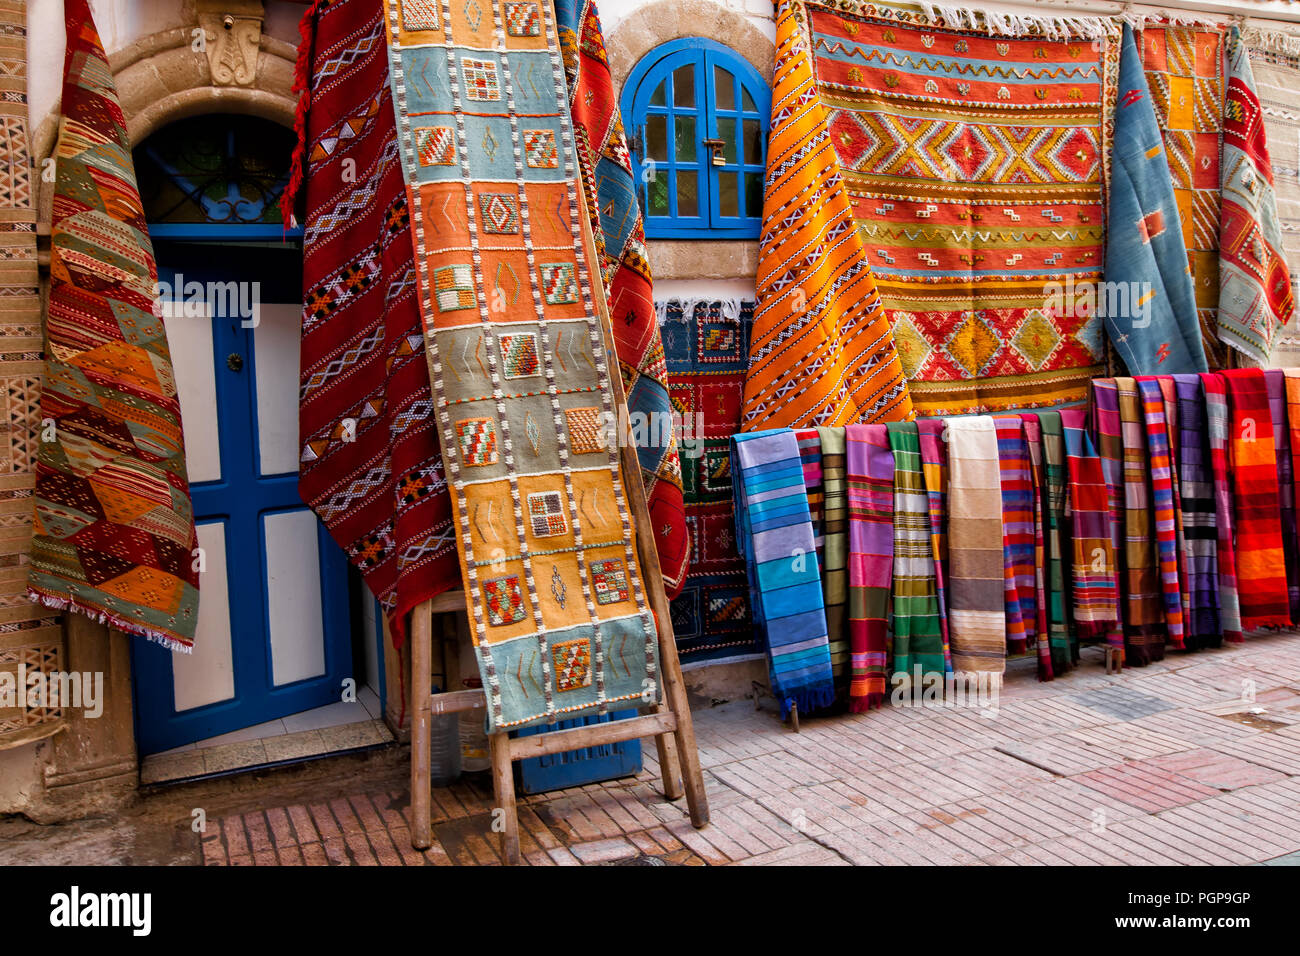 Moroccan Shop With Colorful Rugs And Carpets On Display Outside